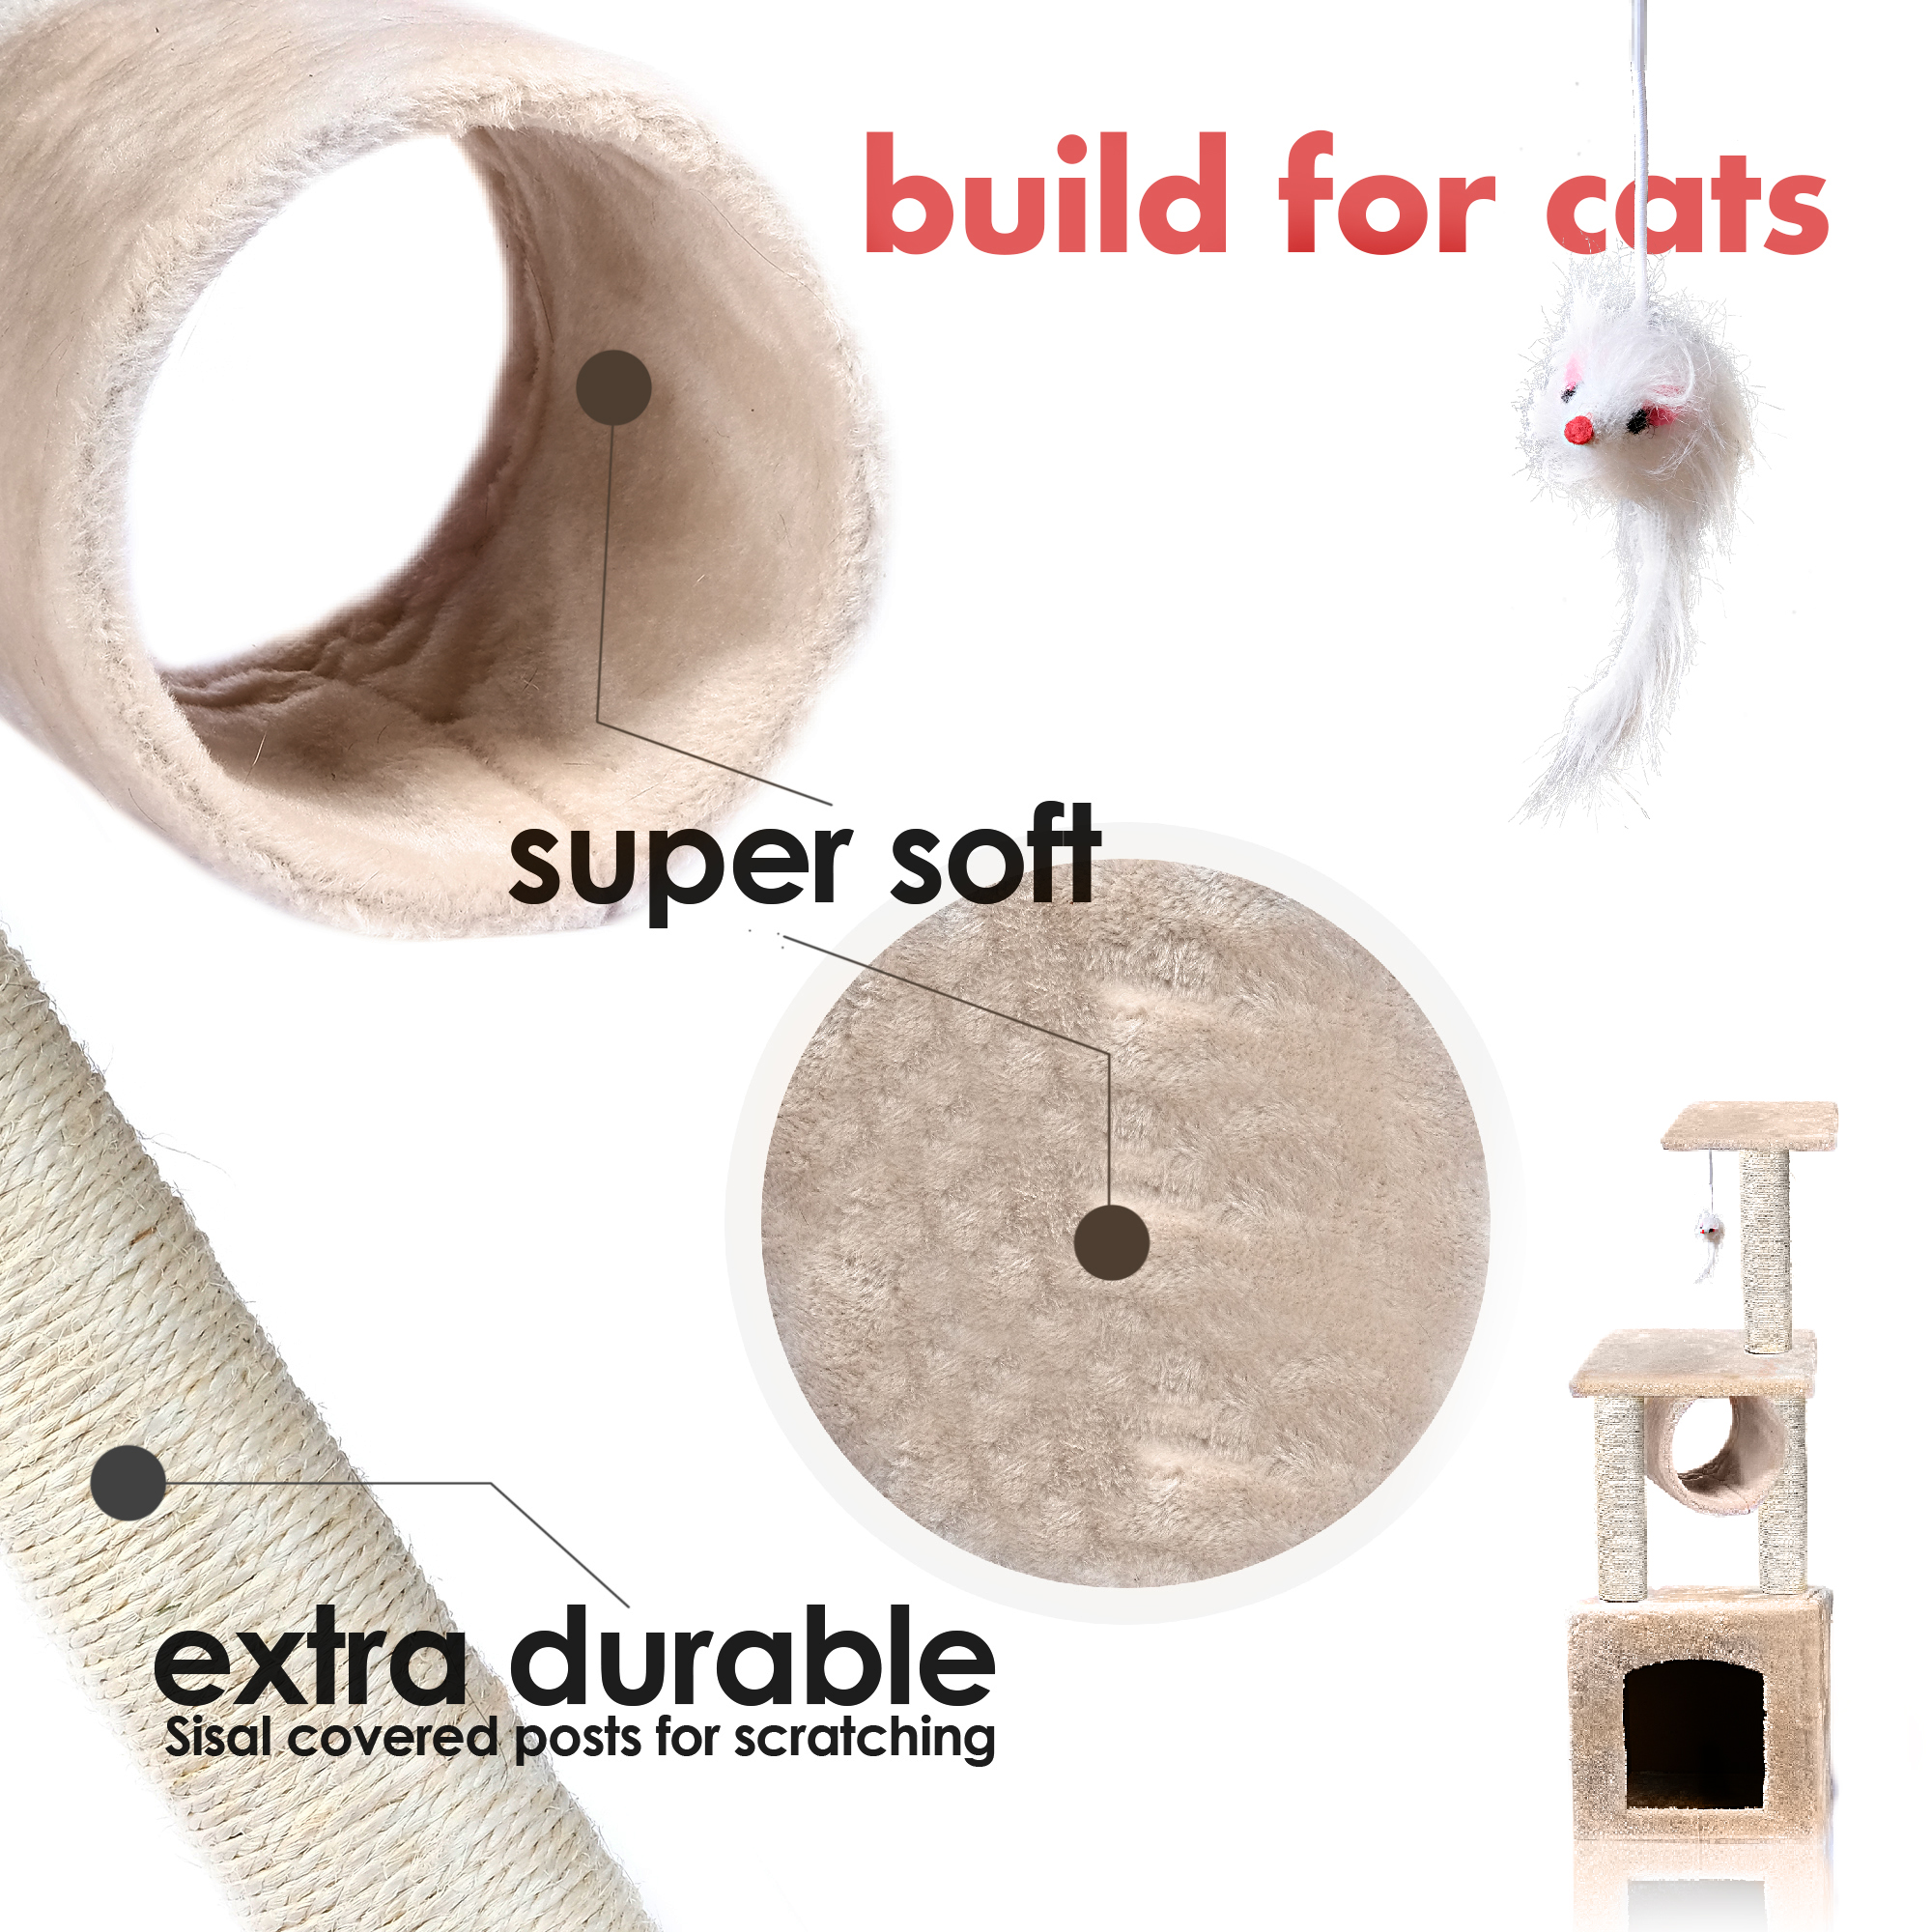 build for cats Final.jpg